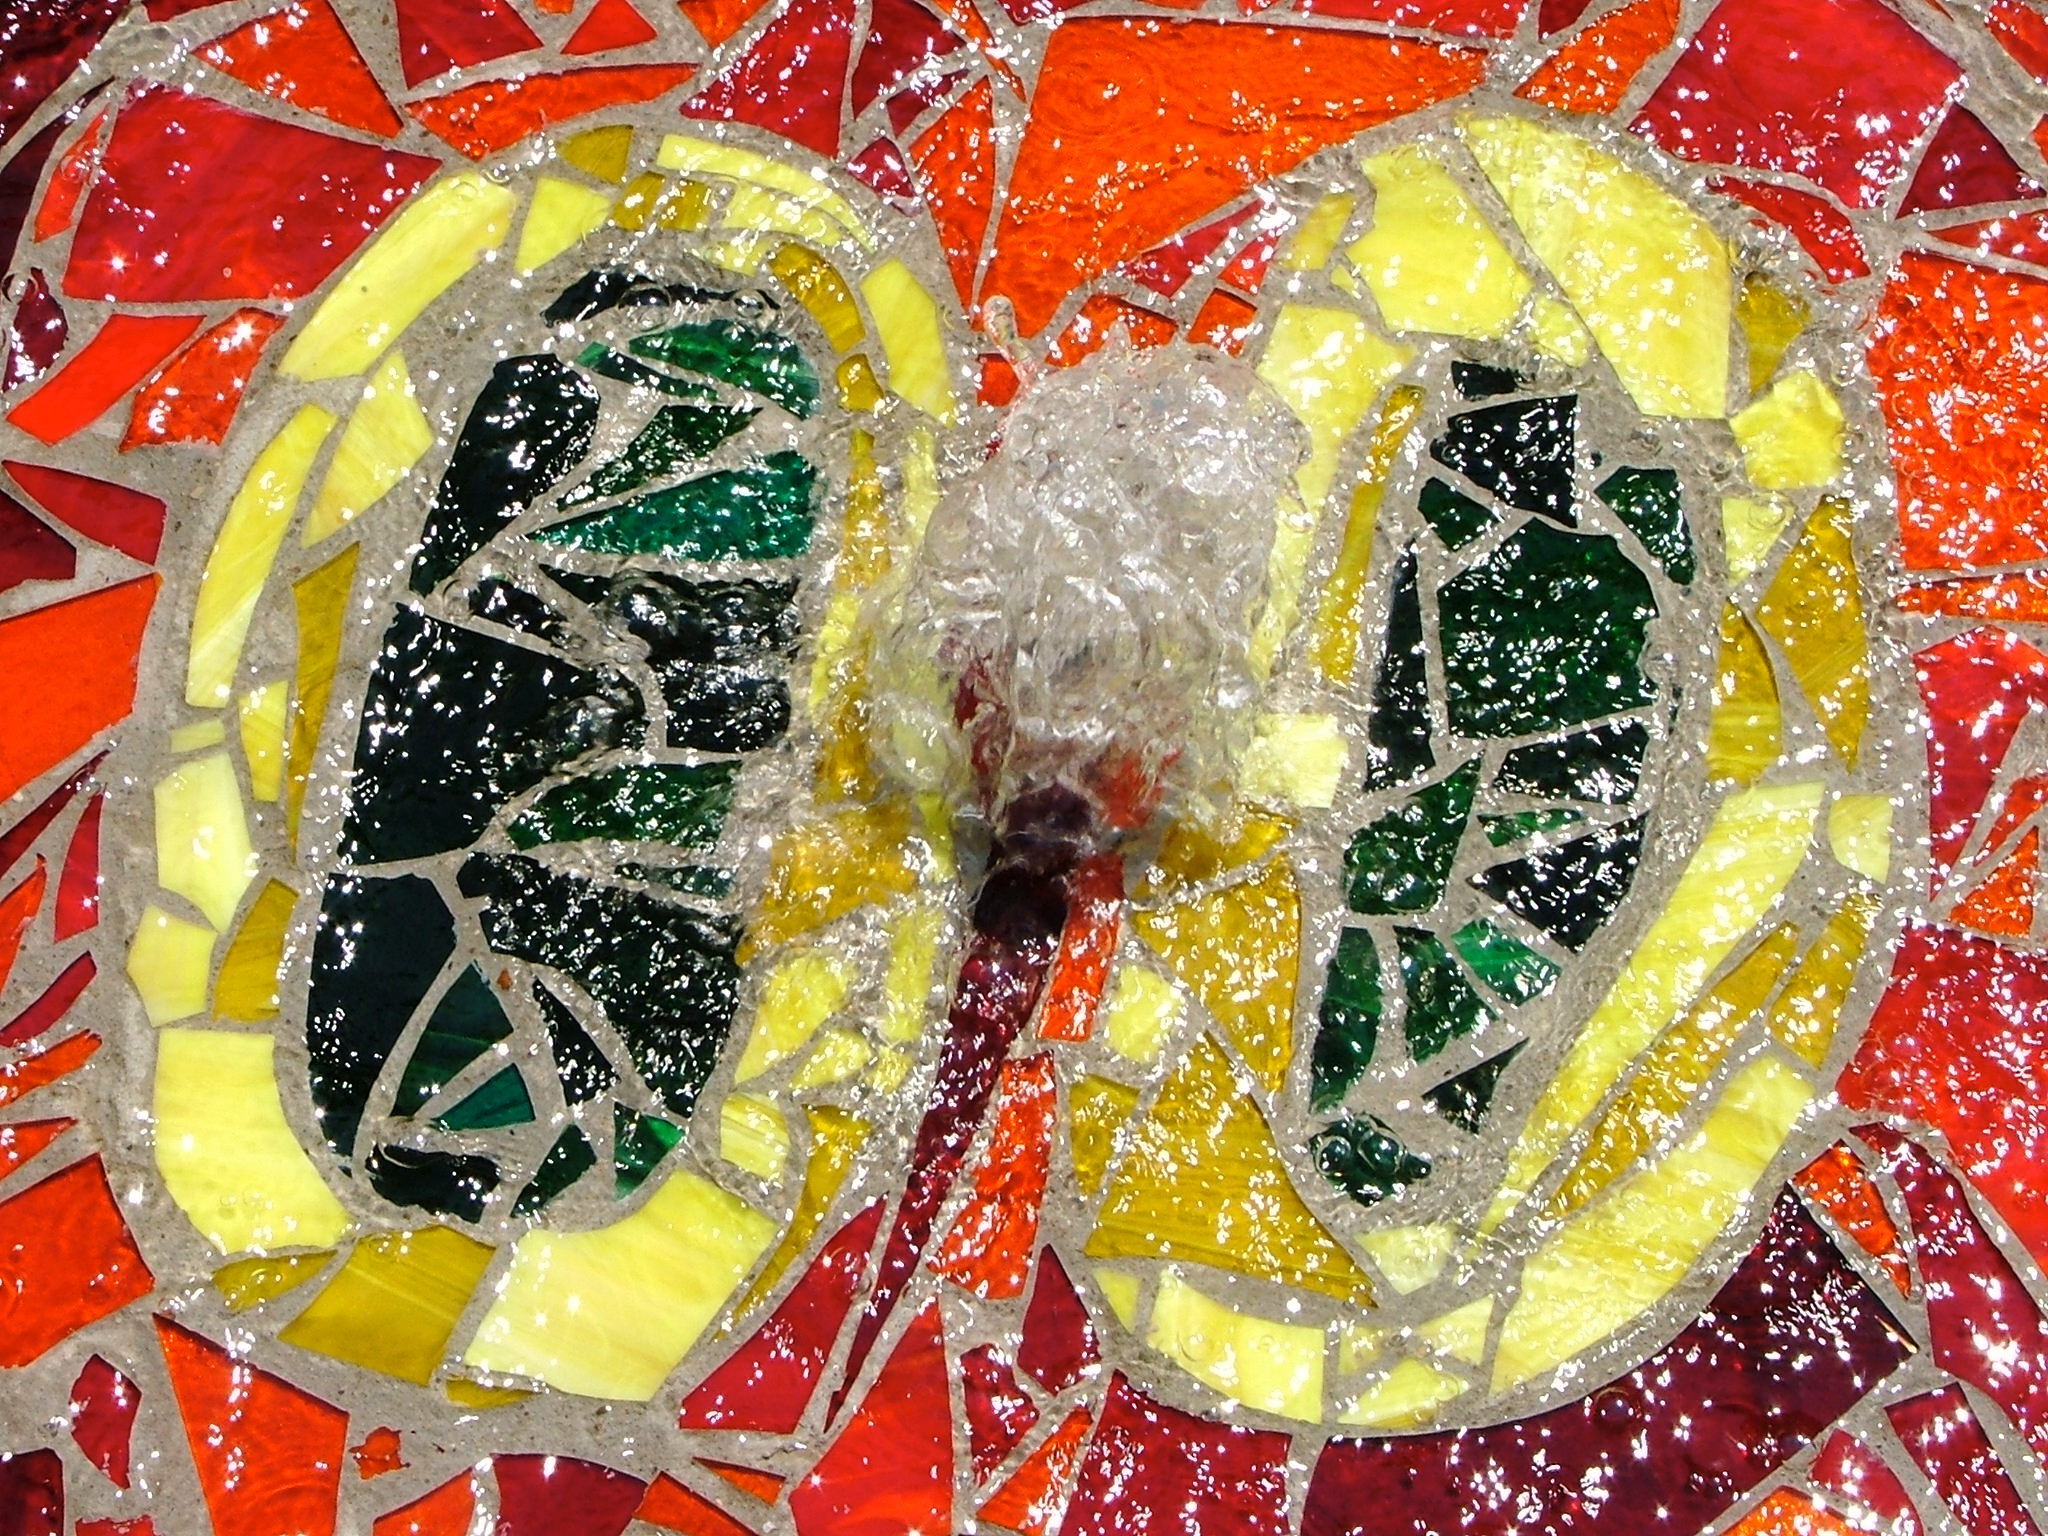 Click on image to view   Hungry Caterpillar  &  Leland Public School Gardens